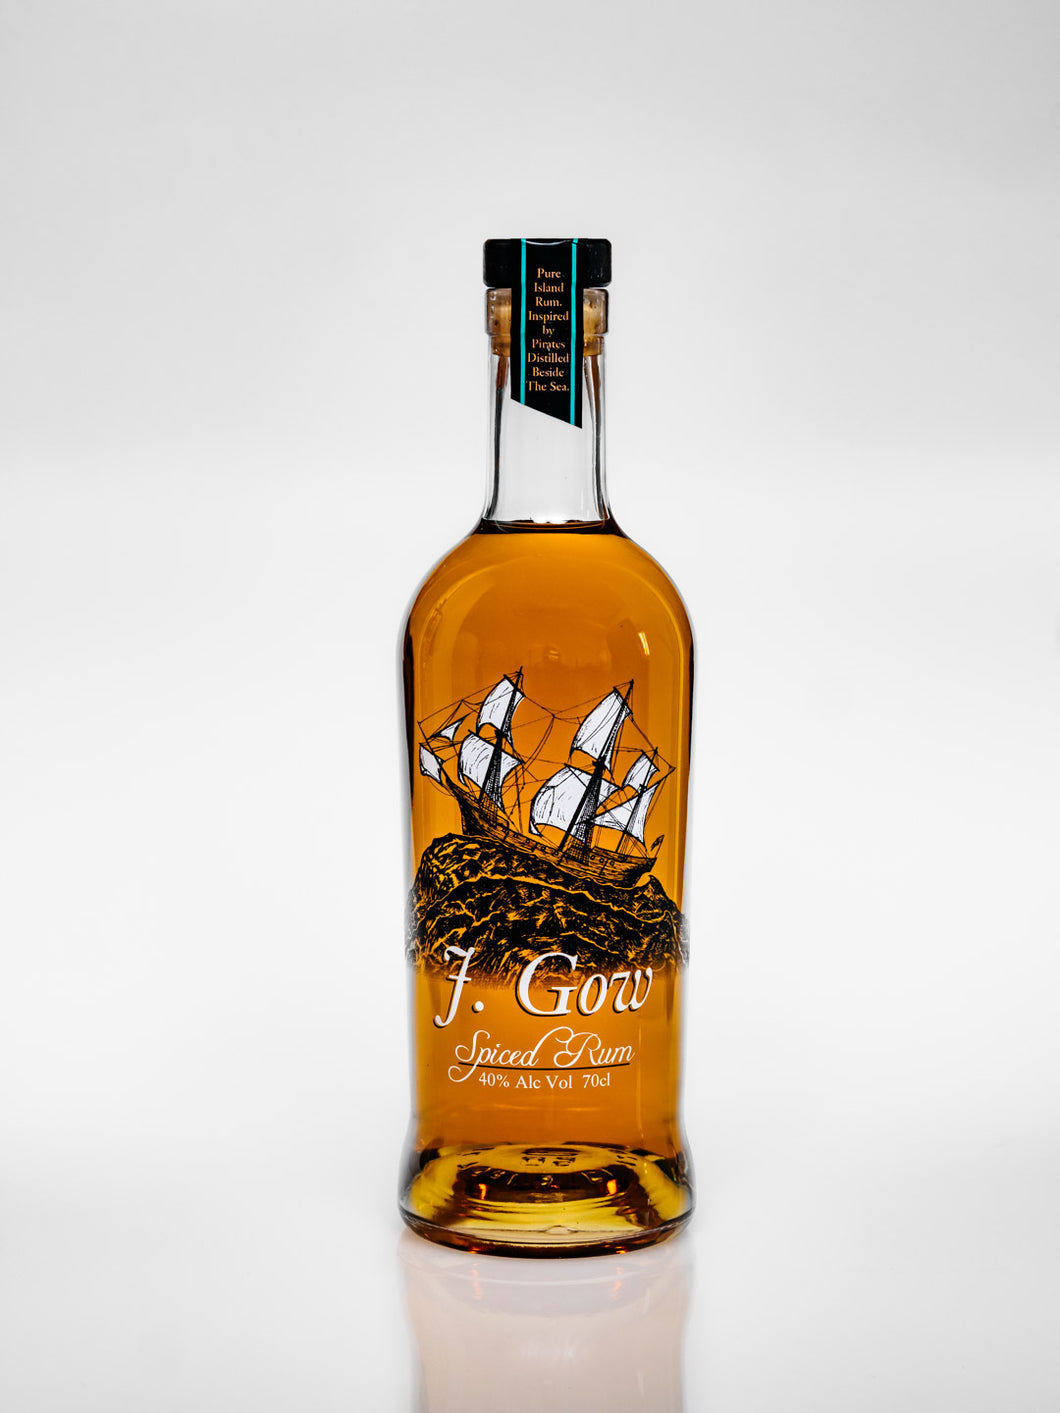 J Gow Spiced Rum